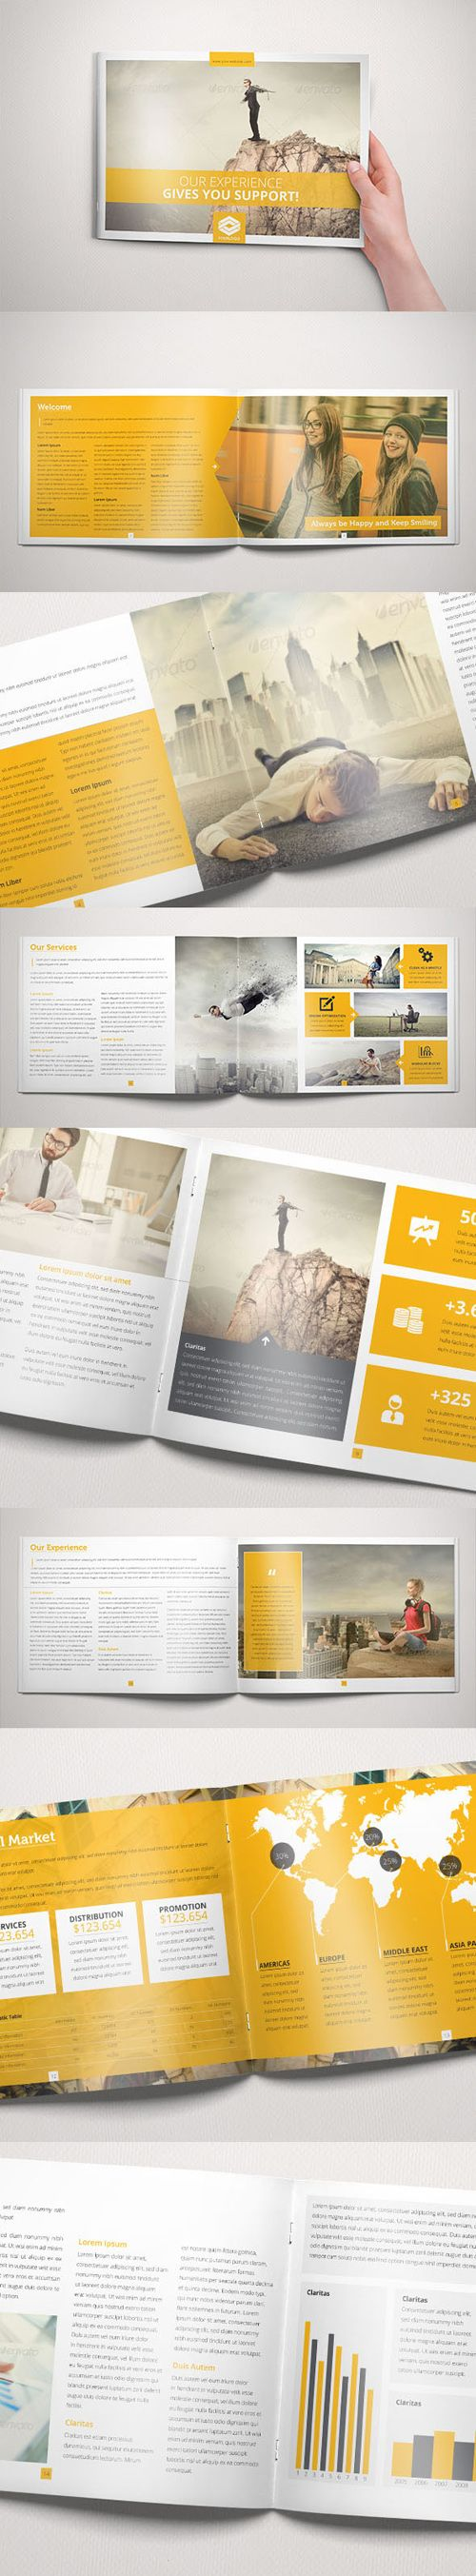 193 best brochure design layout images on pinterest for Indesign interior